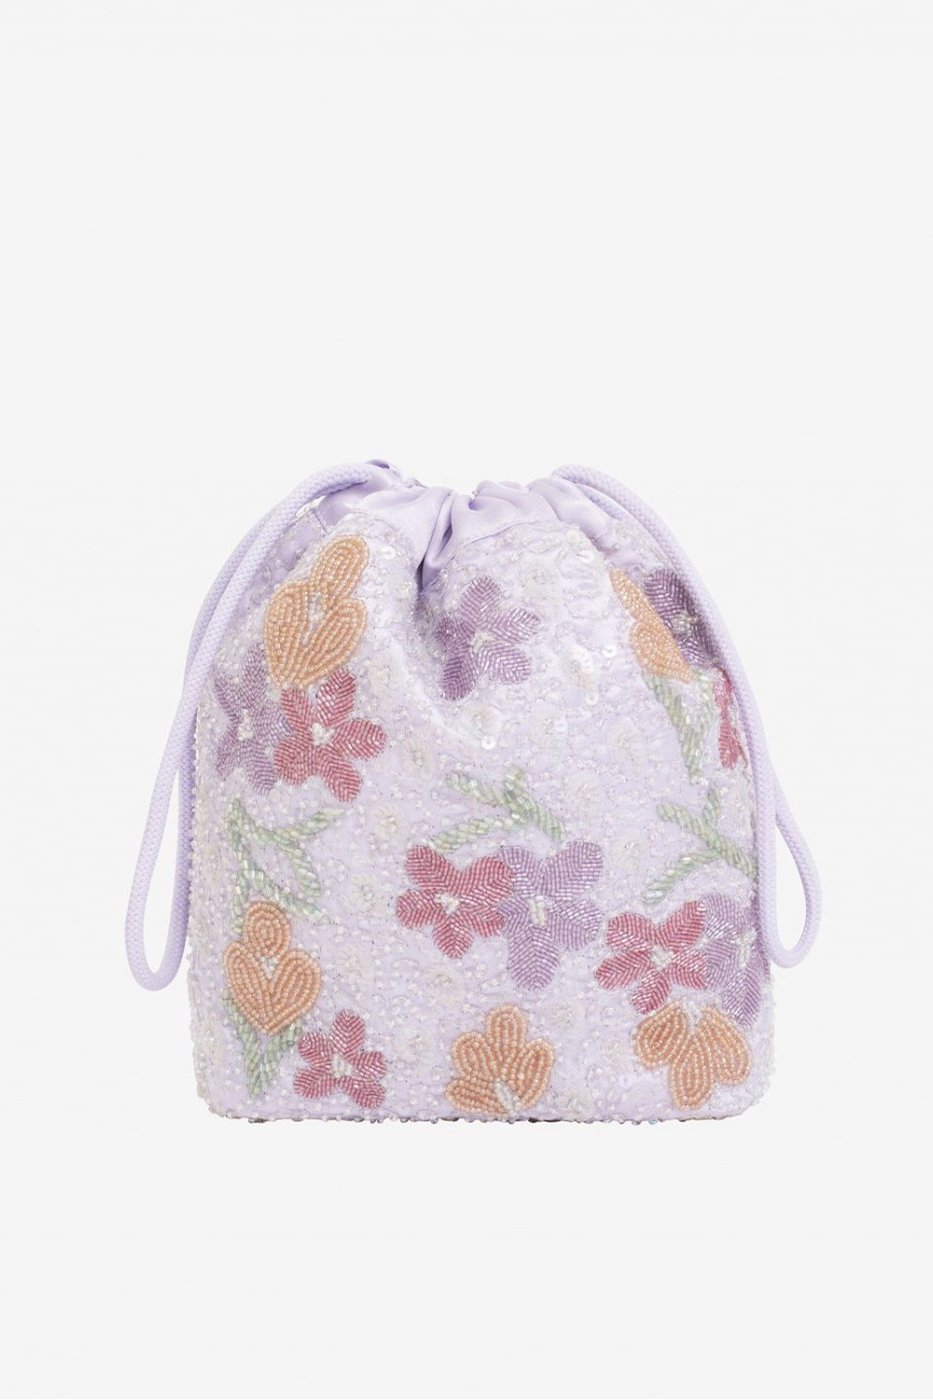 <img class='new_mark_img1' src='https://img.shop-pro.jp/img/new/icons8.gif' style='border:none;display:inline;margin:0px;padding:0px;width:auto;' />HVISKビスク-POUCH DREAMY BEADED-SOFT PINK